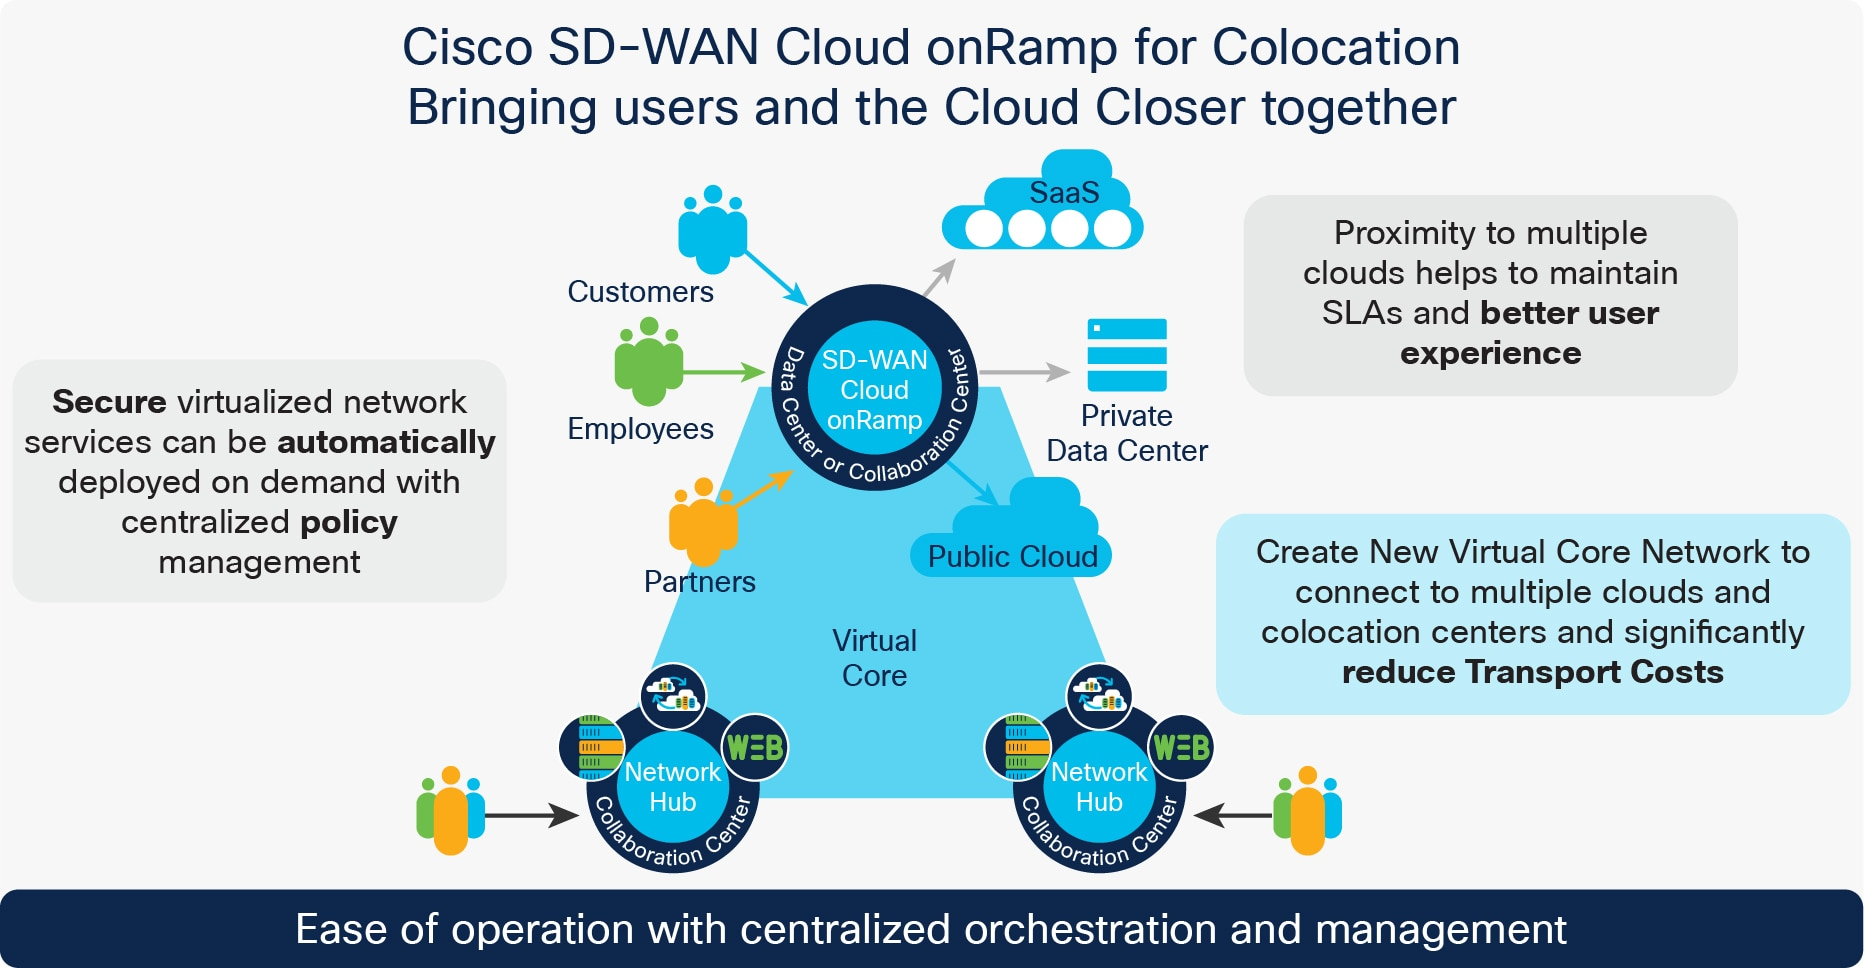 Solutions - Cisco Software-Defined WAN (SD-WAN) Cloud onRamp for